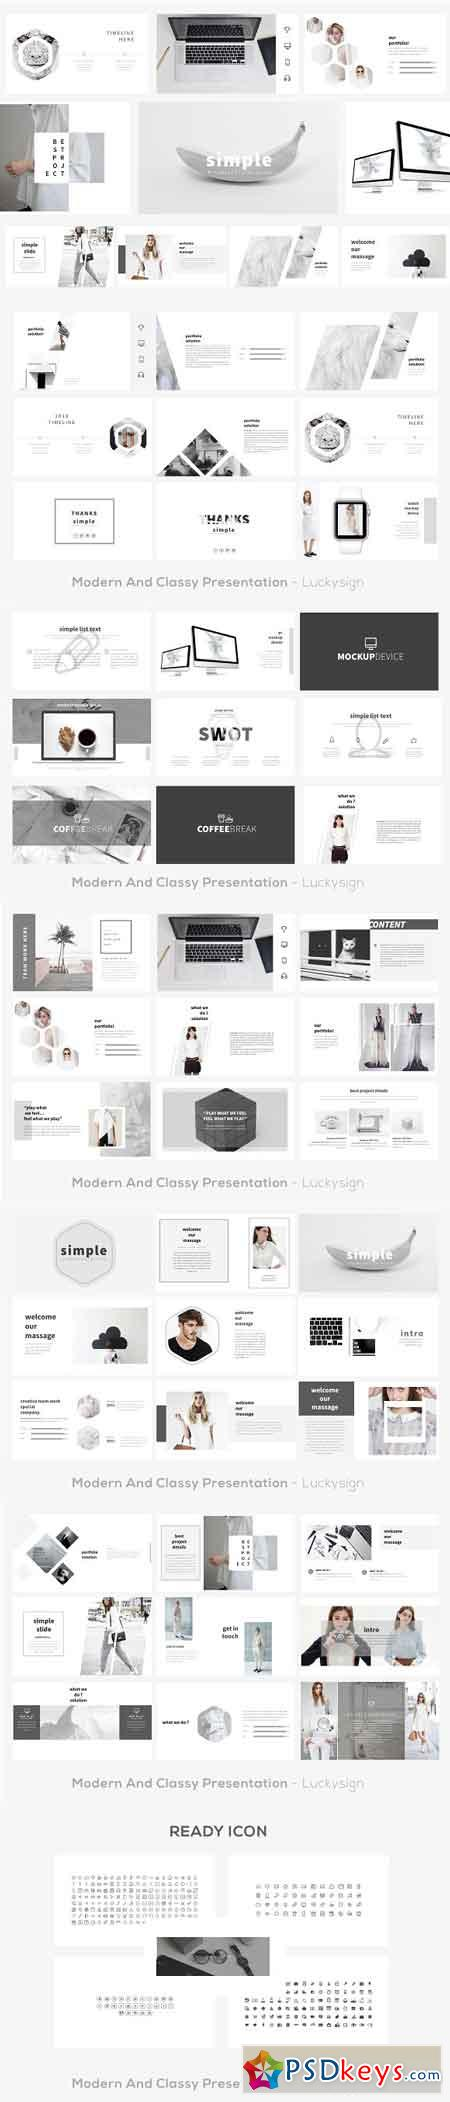 Simple Presentation Template 2413462